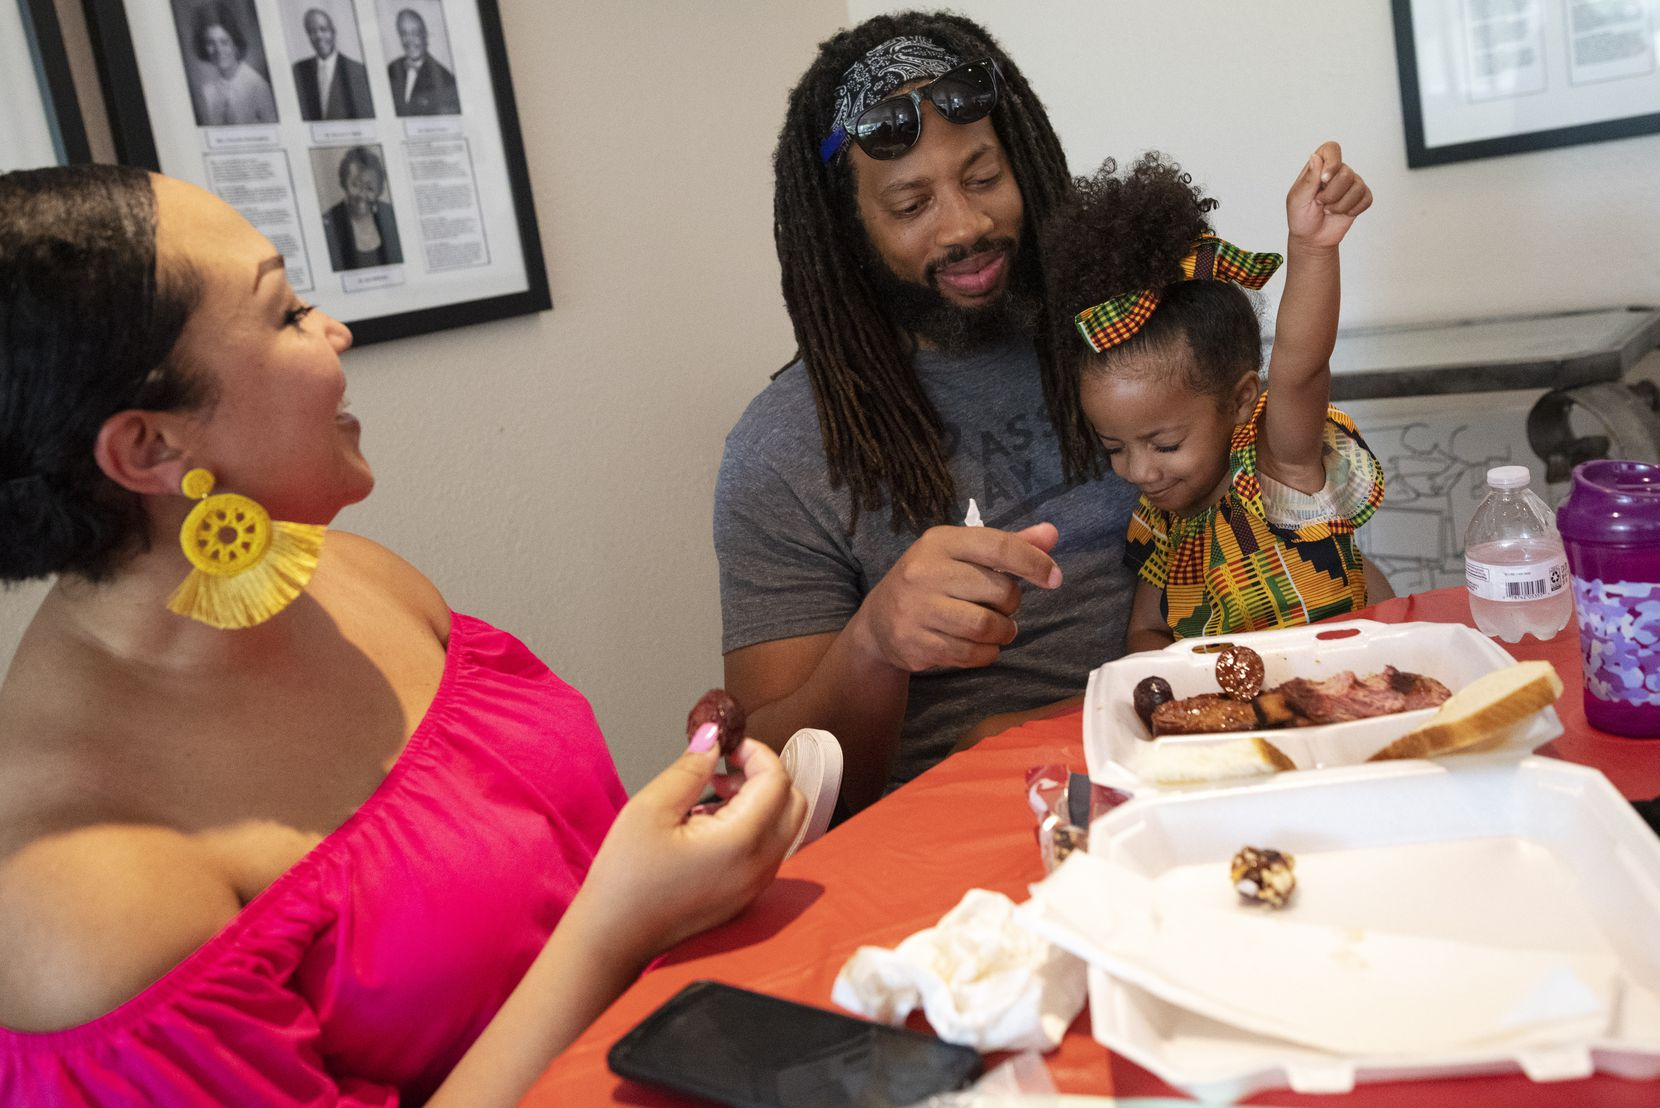 Egypt Shurn enjoyed the food she shared with parents Vernicia and Tommy Shurn on Saturday.